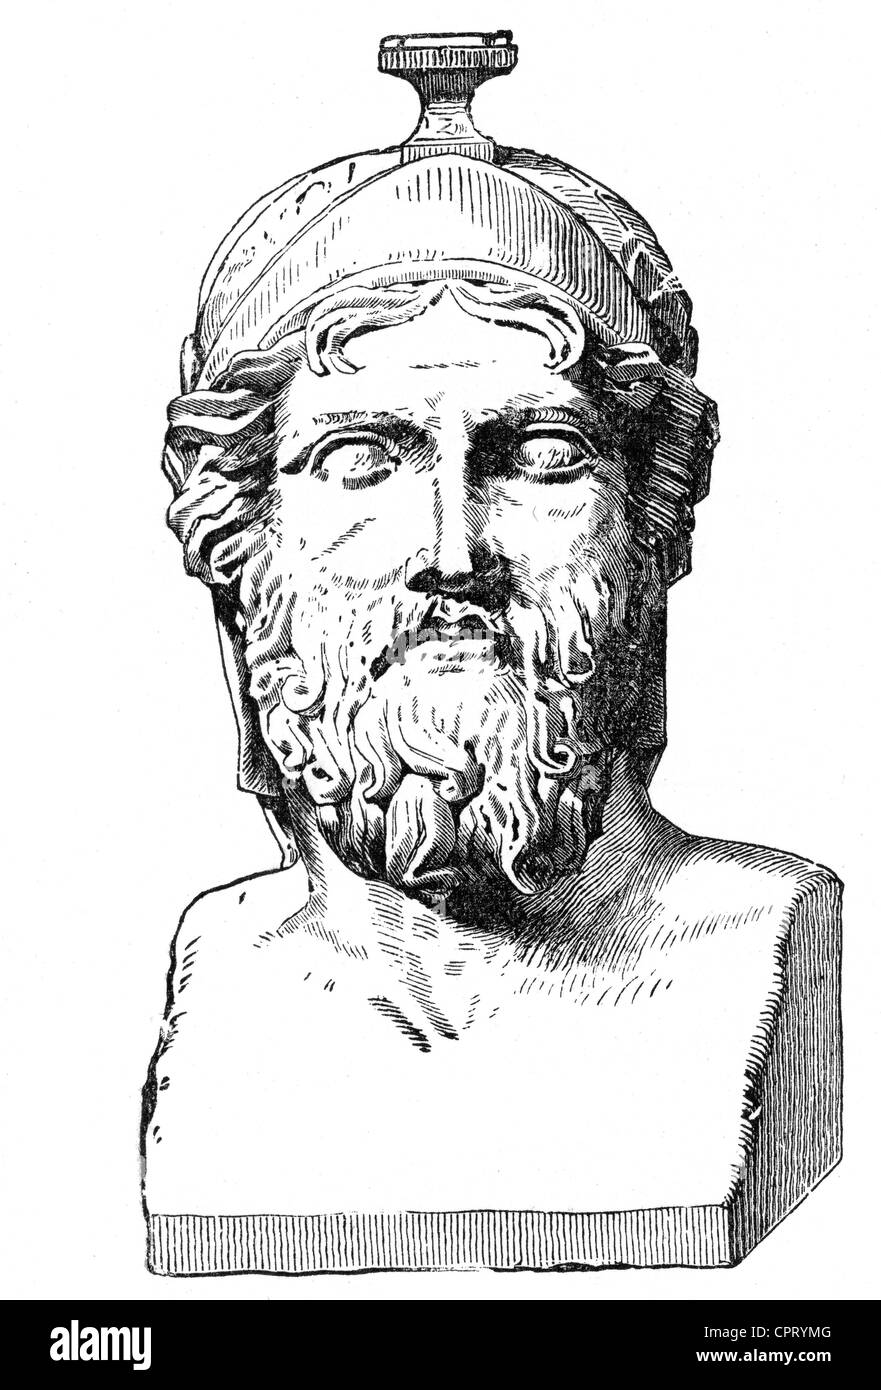 Miltiades, Athens statesman and commander, victor near marathon 490 BC against the Persian, portrait, bust, 19th - Stock Image